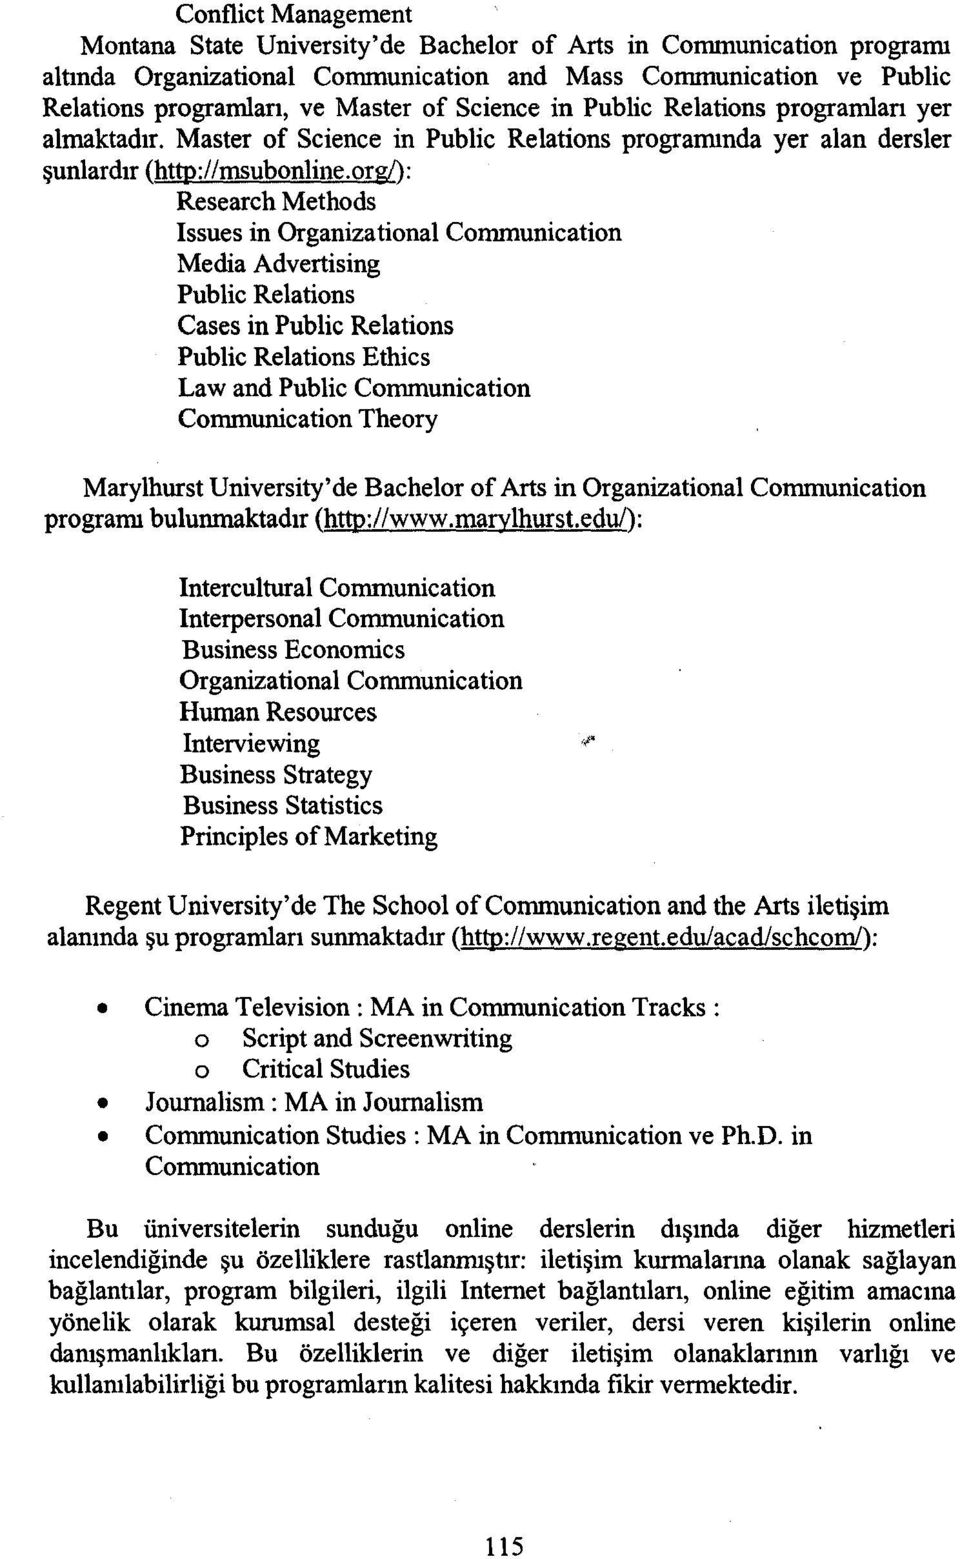 org/): Research Methods Issues in Organizational Communication Media Advertising Public Relations Cases in Public Relations Public Re1ations Ethics Lawand Public Communication Communication Theory